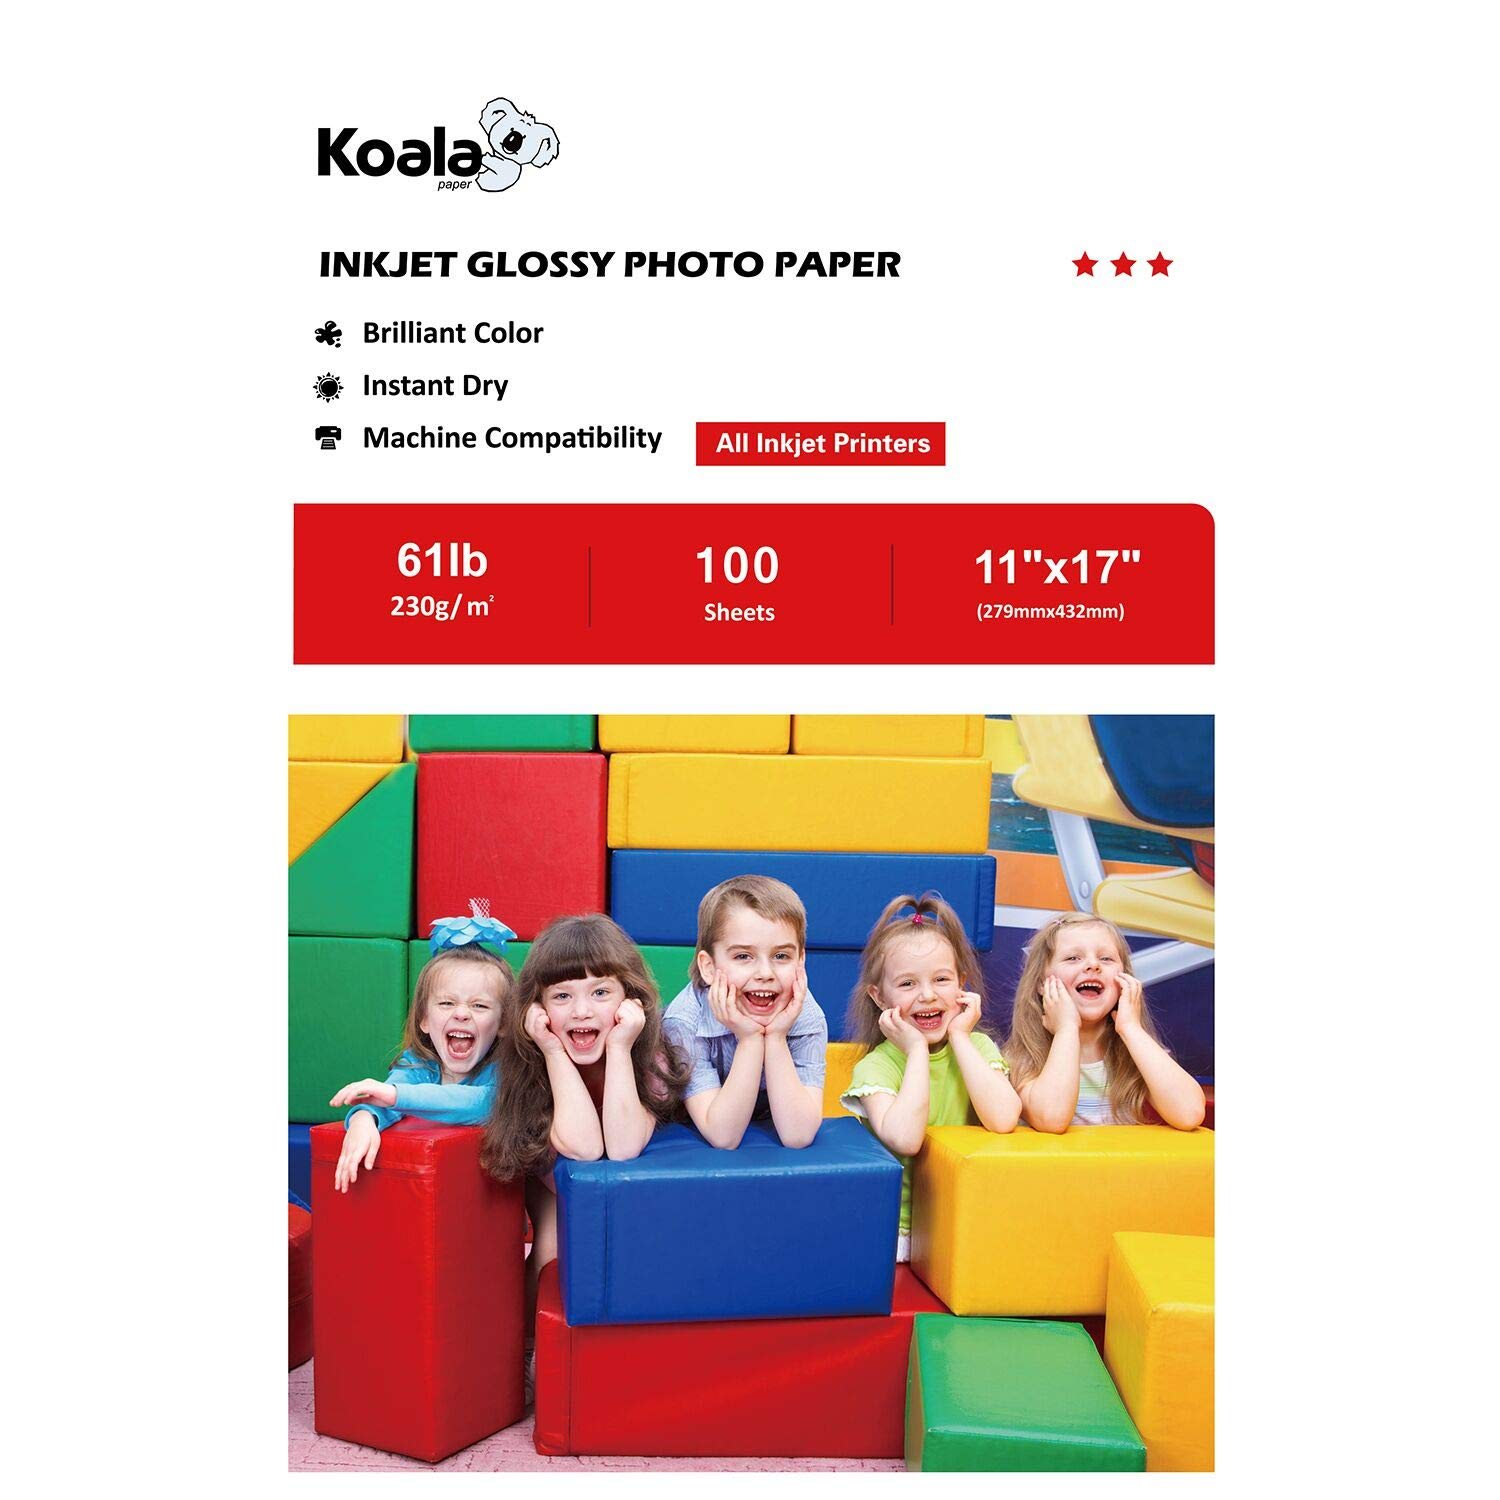 Koala Photo Paper High Glossy 11x17 Inches 230gsm 100 Sheets Compatible with All Inkjet Printer